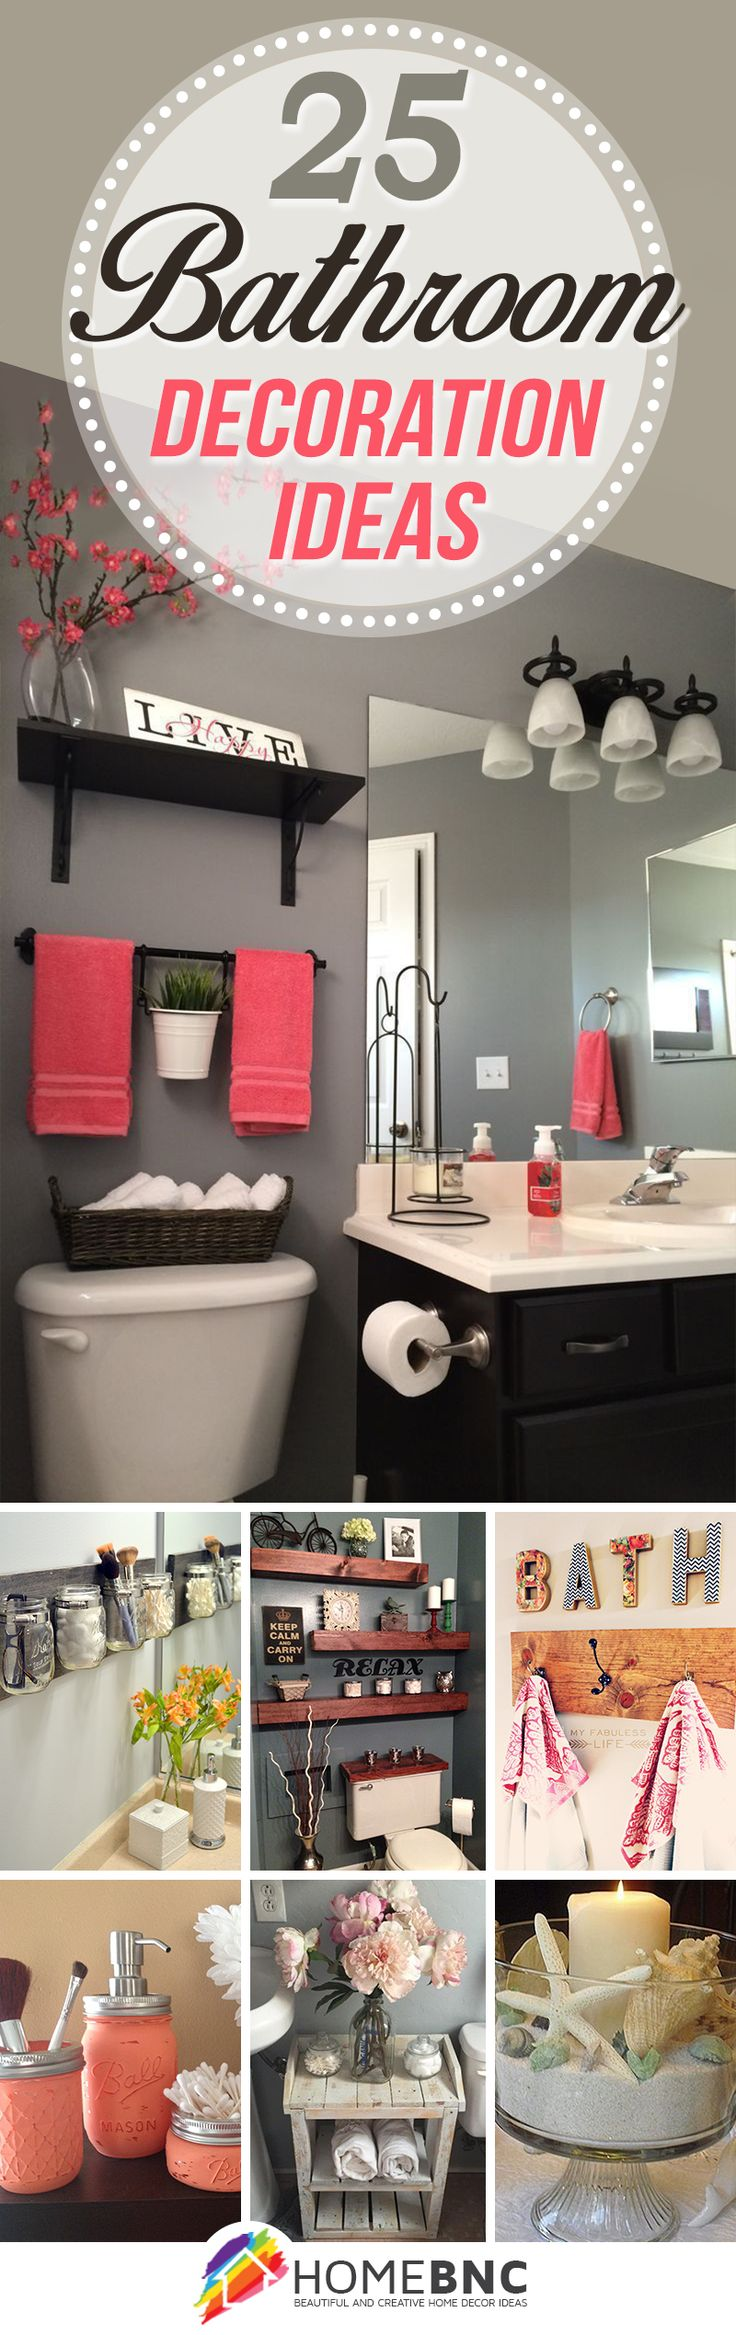 Best 25+ Apartment Bathroom Decorating Ideas On Pinterest | Diy Bathroom  Decor, Half Bathroom Remodel And Simple Apartment Decor